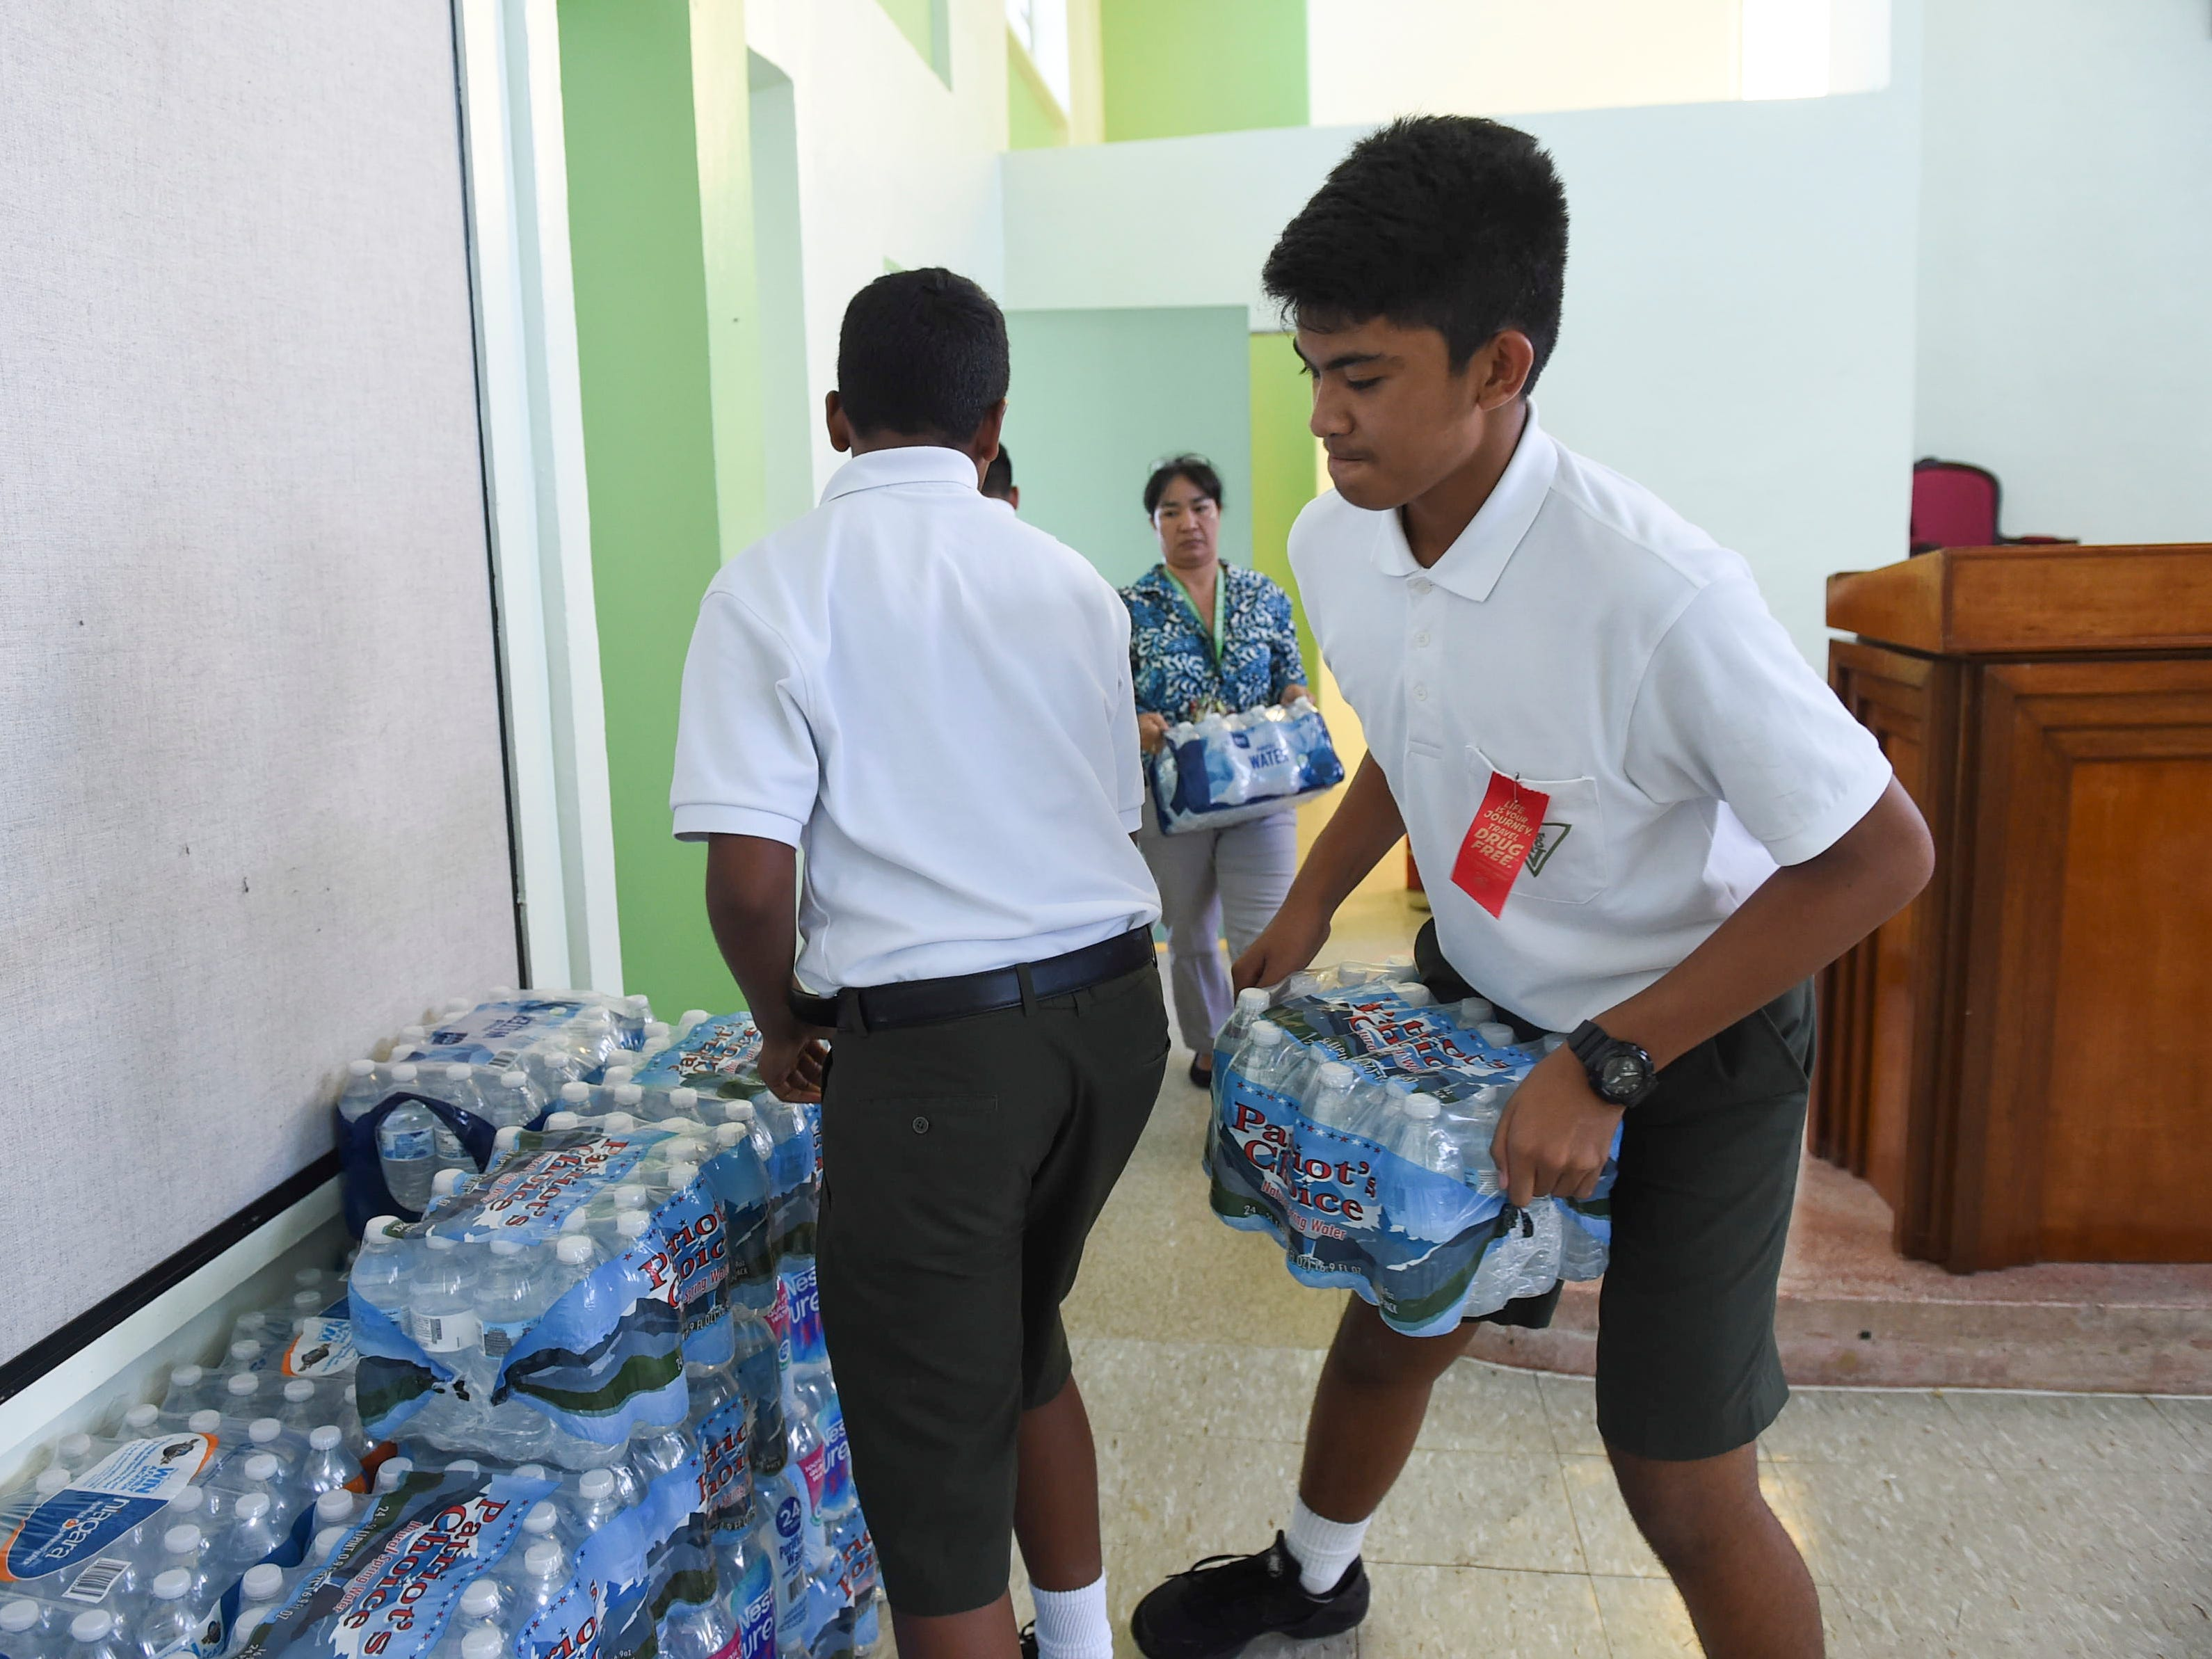 San Vicente Catholic School student Joseph A. Mafnas, 13, right, helps transport cases of bottled water to the staging and distribution area for a Super Typhoon Yutu relief effort on his school's campus, Oct. 29, 2018.